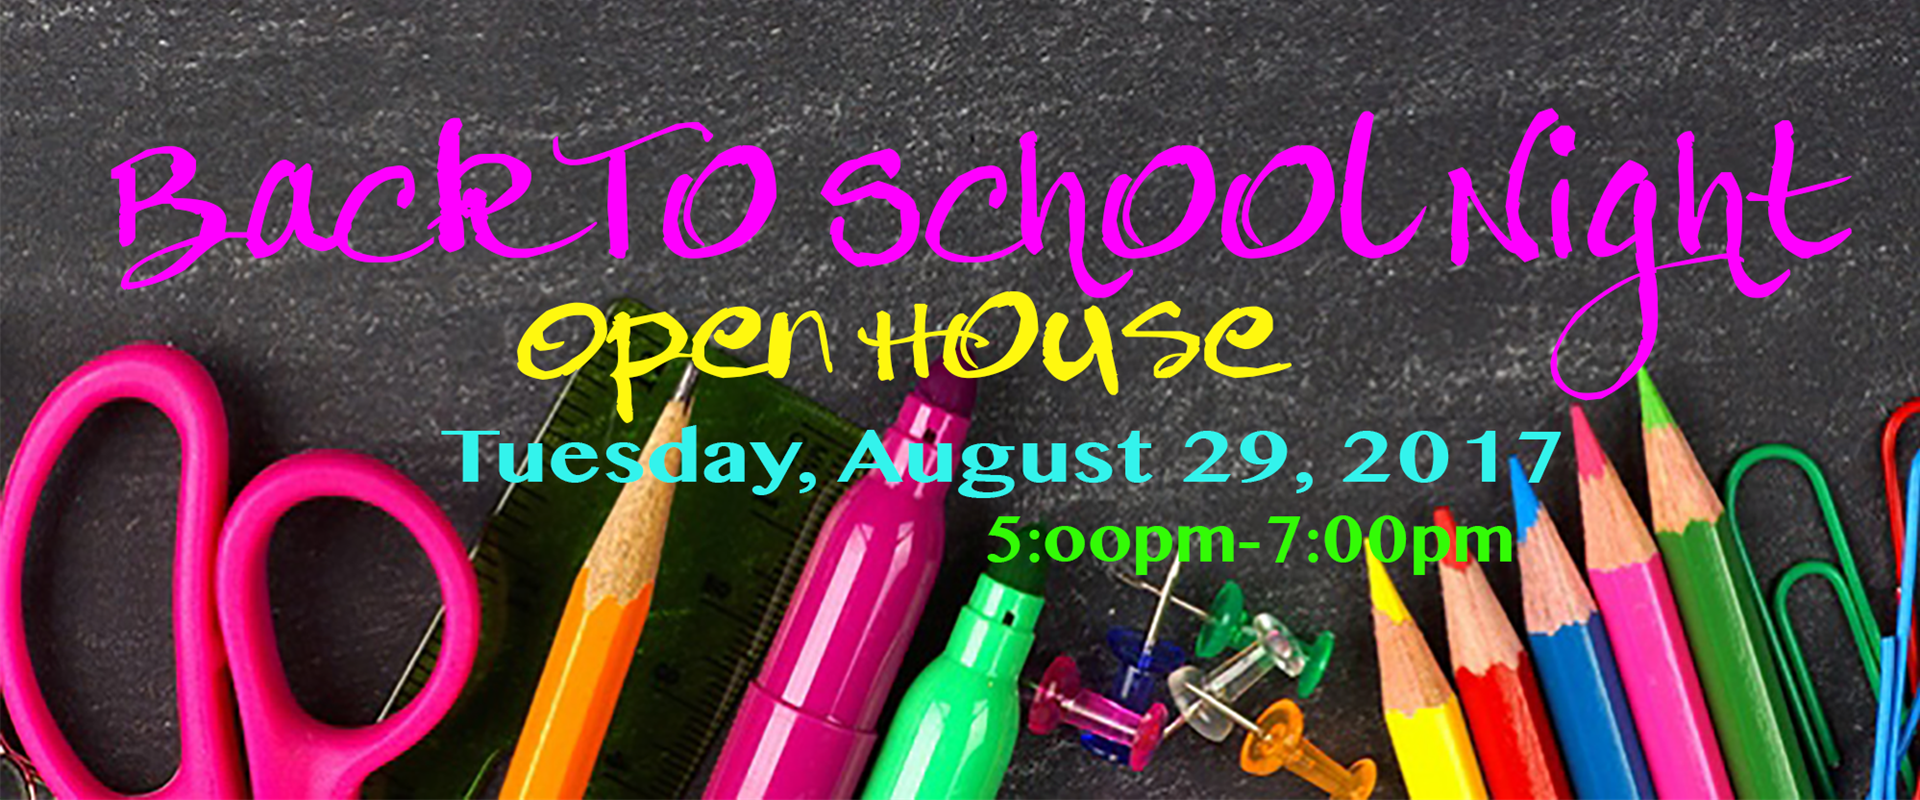 Back To School Open House will be held on Tuesday, August 29th from 5:00-7:00pm! See you there!